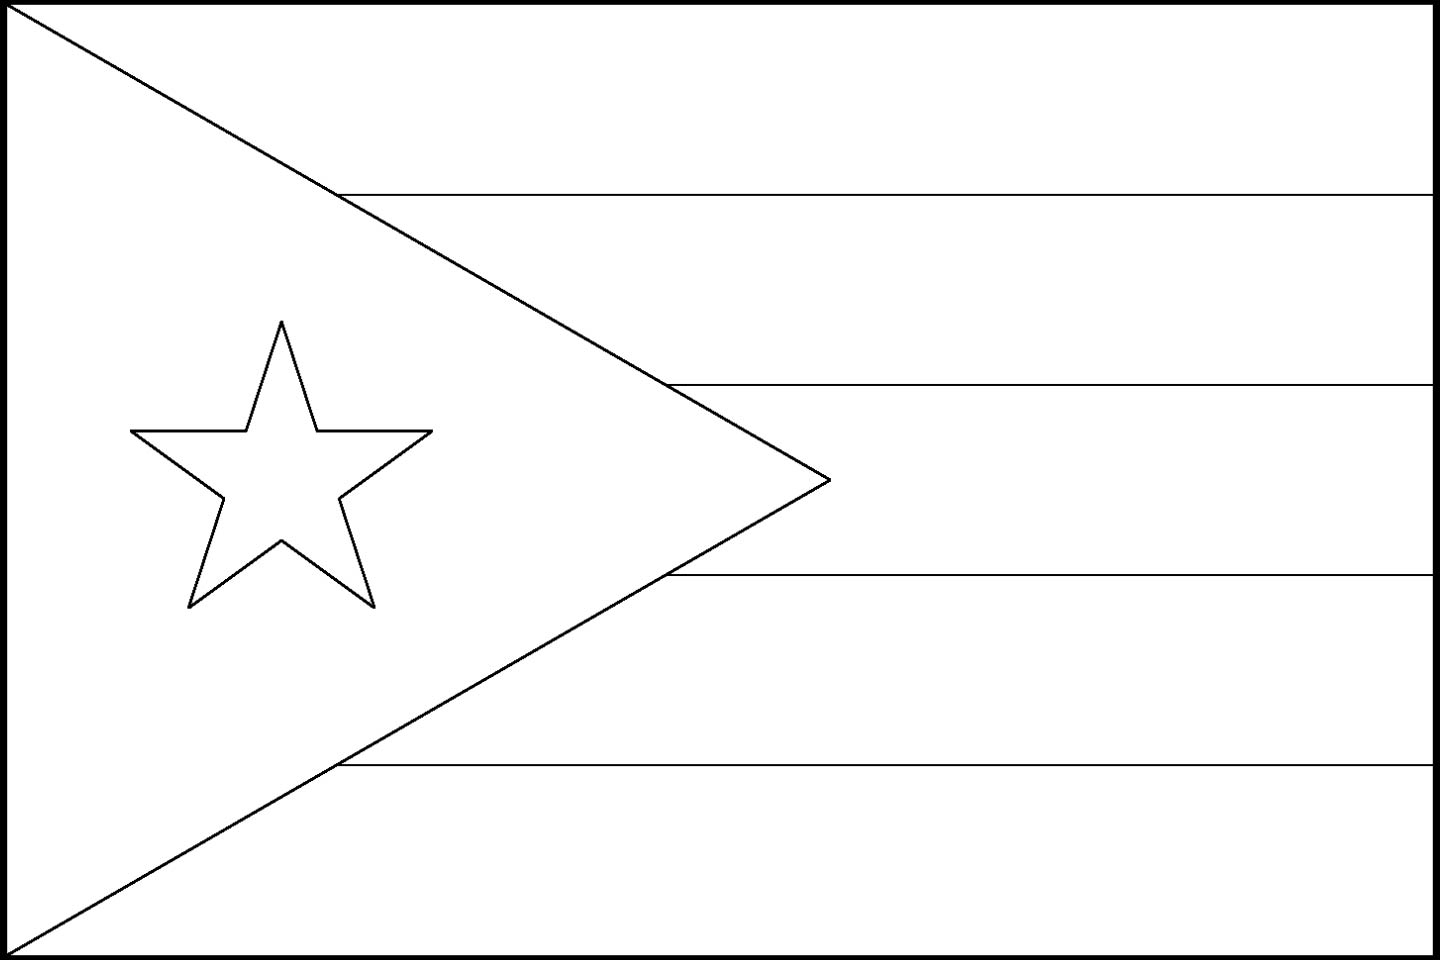 Puerto rico state flag download puerto rico state flag line drawings jpg biocorpaavc Image collections